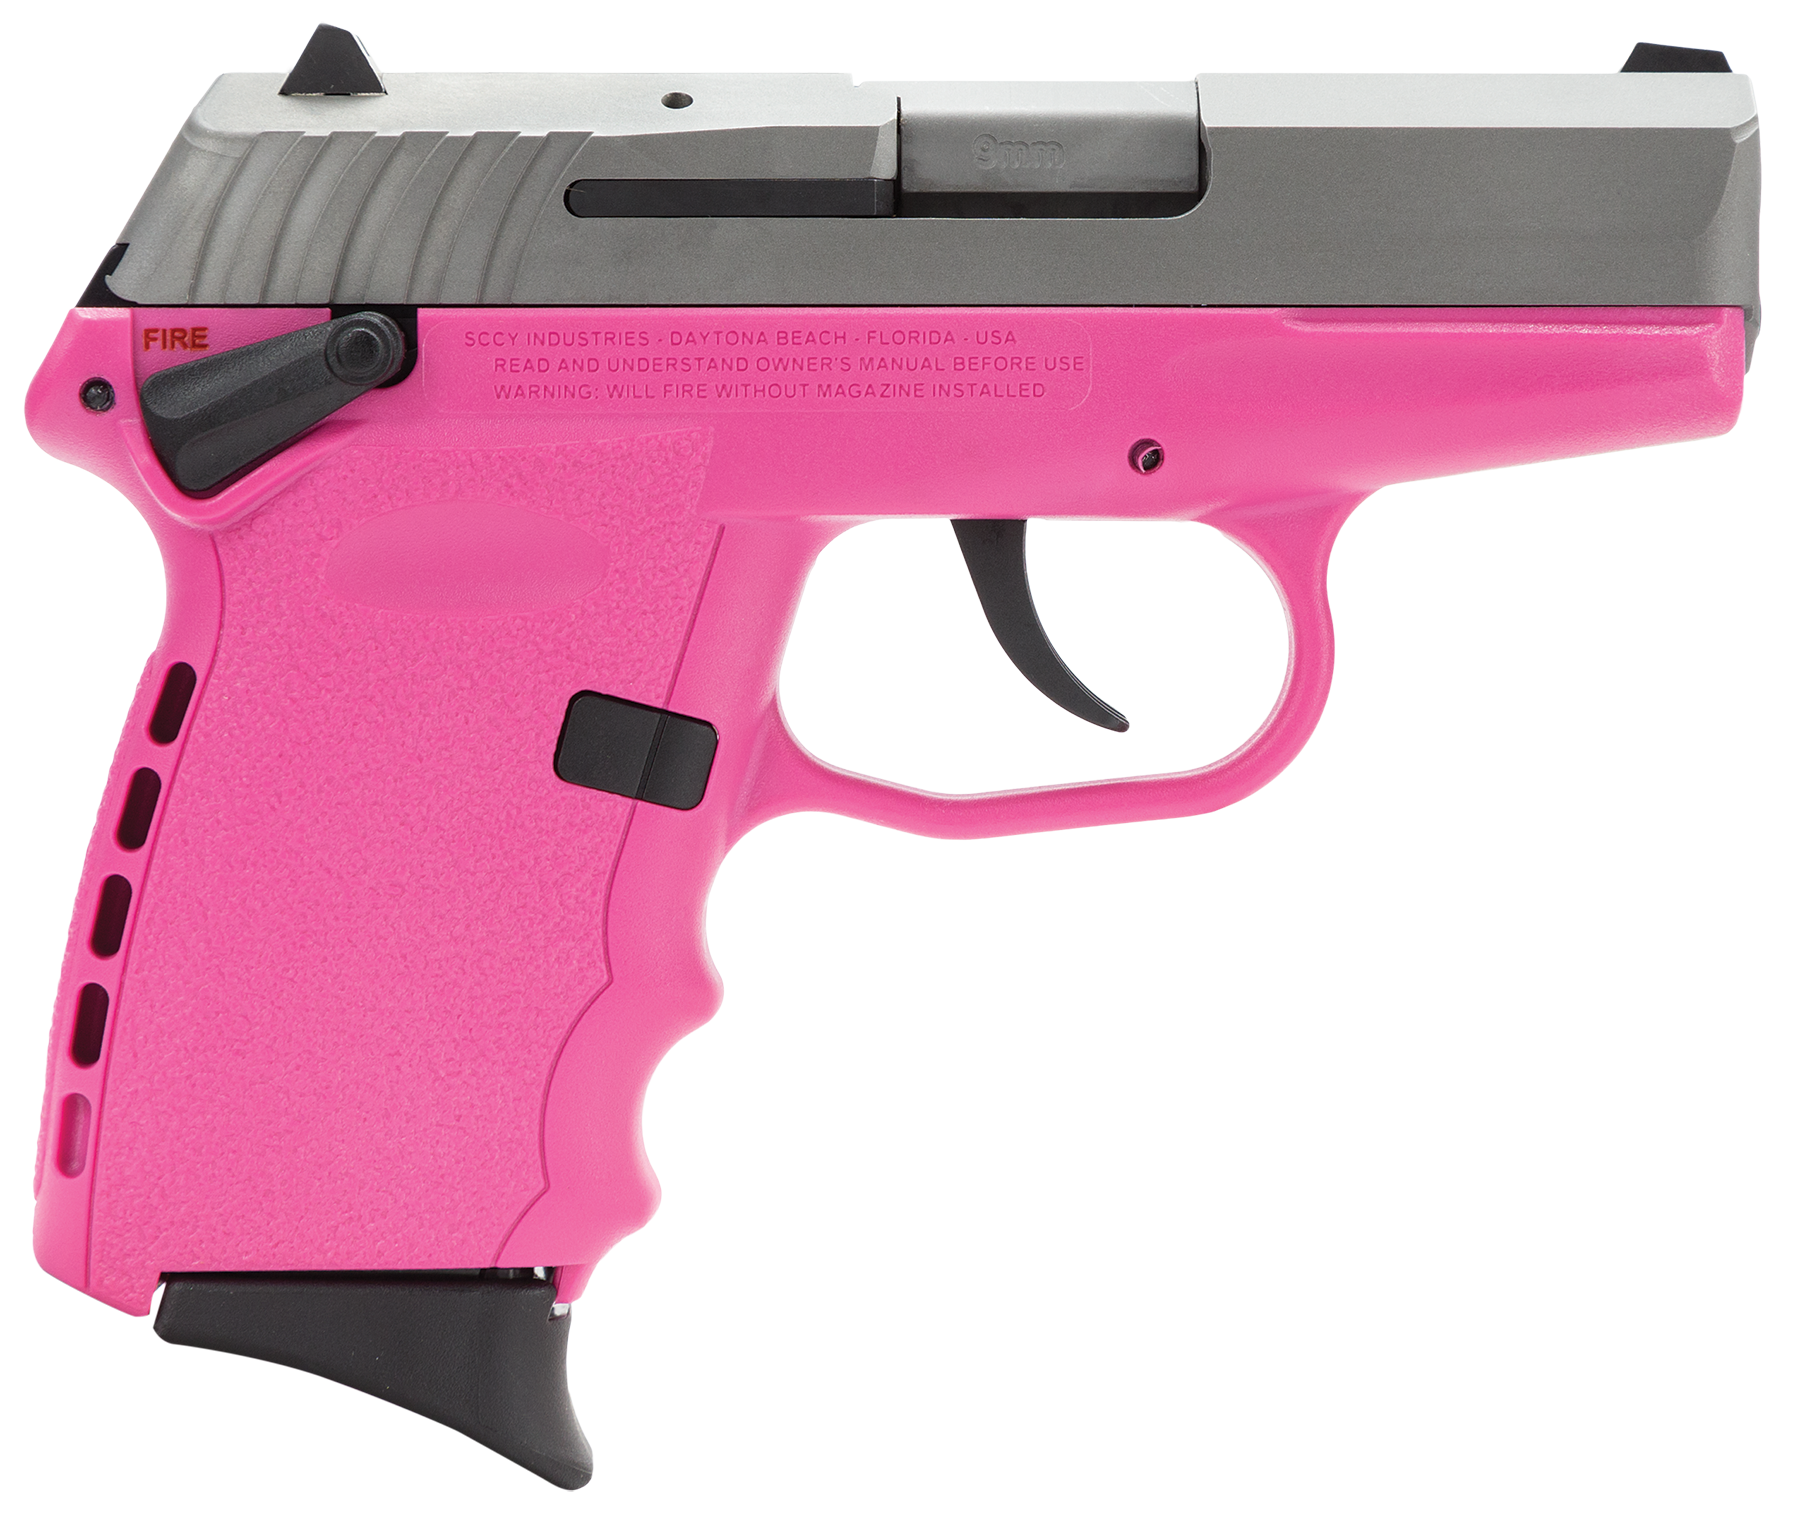 SCCY Industries CPX1TTPK CPX-1 Double 9mm 3.1